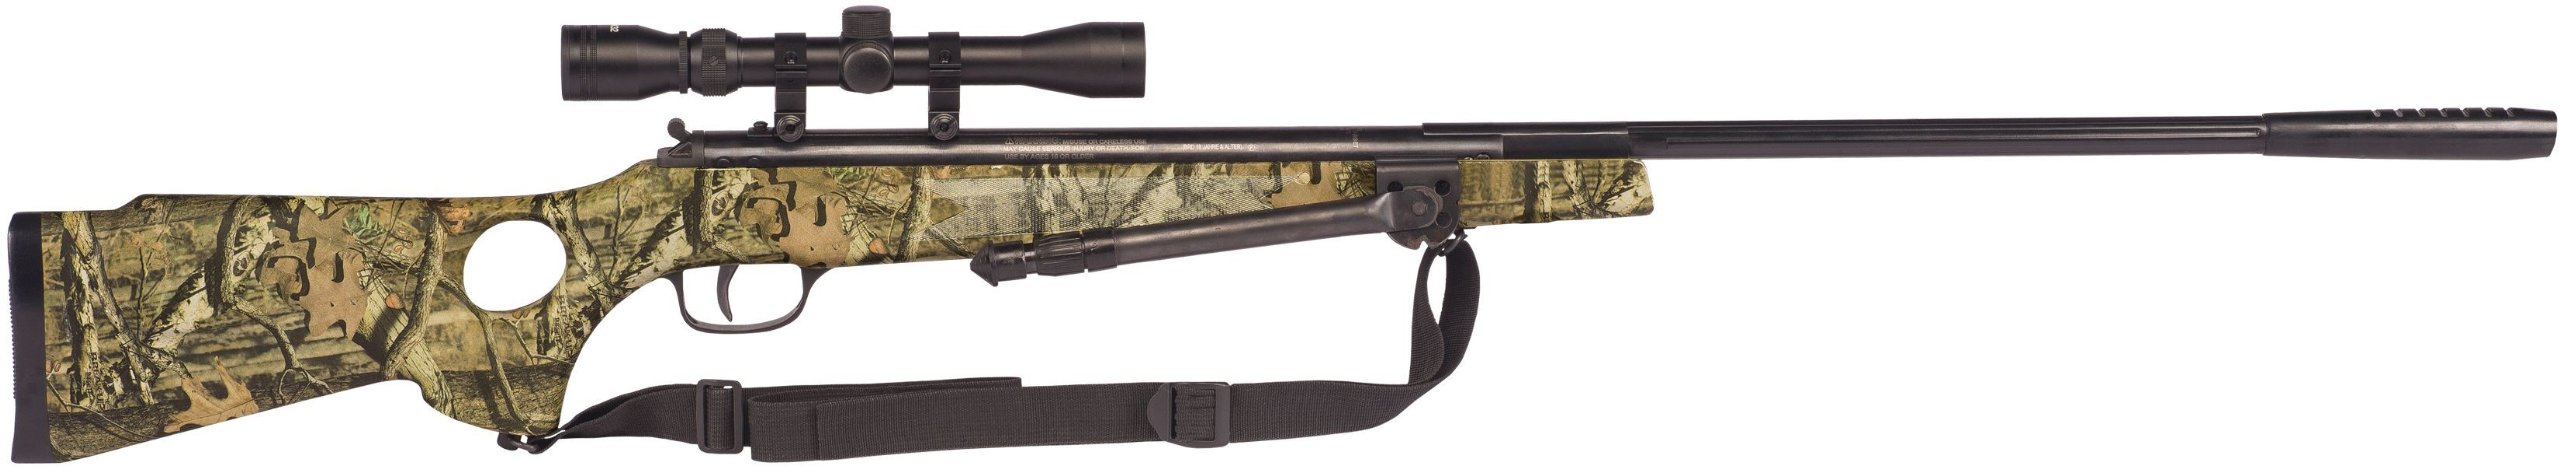 Winchester Model 1400CS .177 Caliber Break-Barrel Air Rifle with Scope/Bi-Pod/Sling, Mossy Oak by Winchester